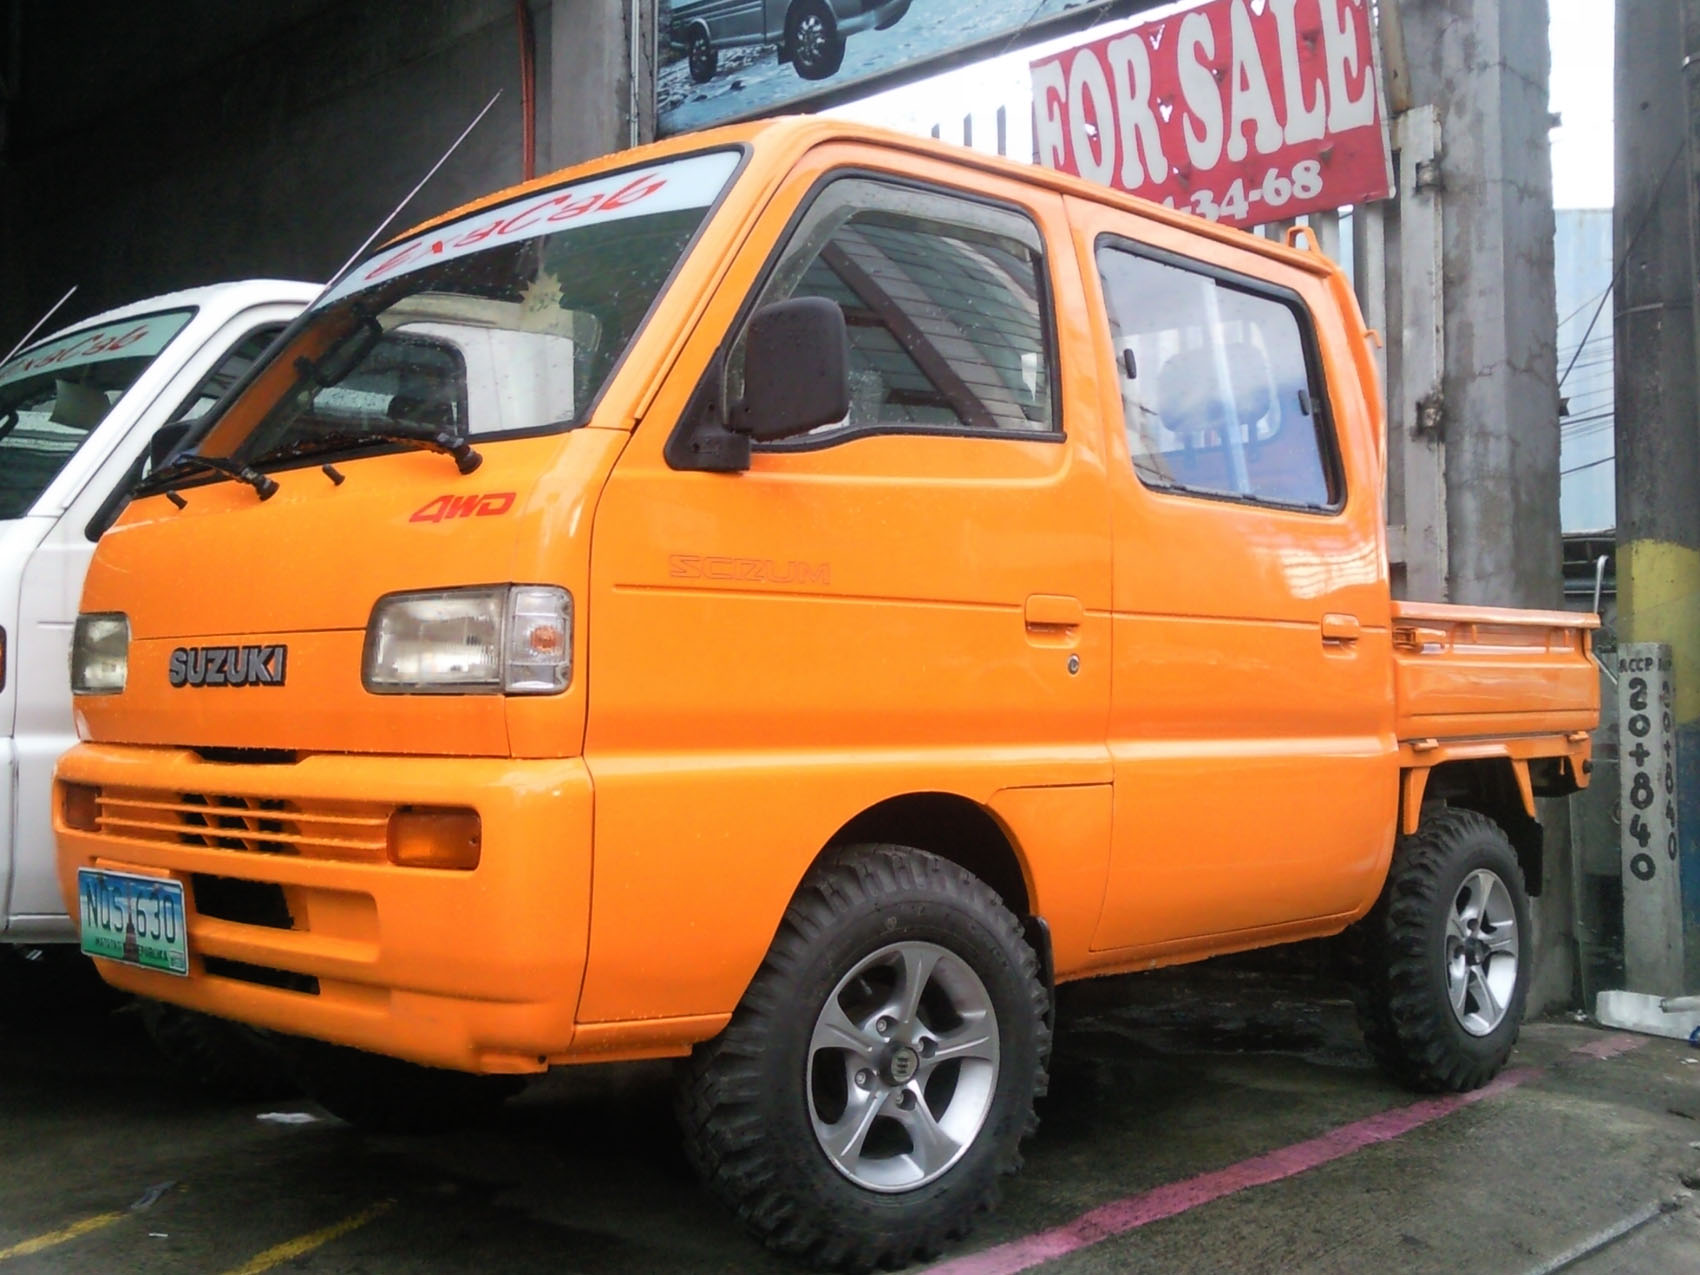 multicab any kind available tel 02-774-3469 and 02-774-3468, - 19027125